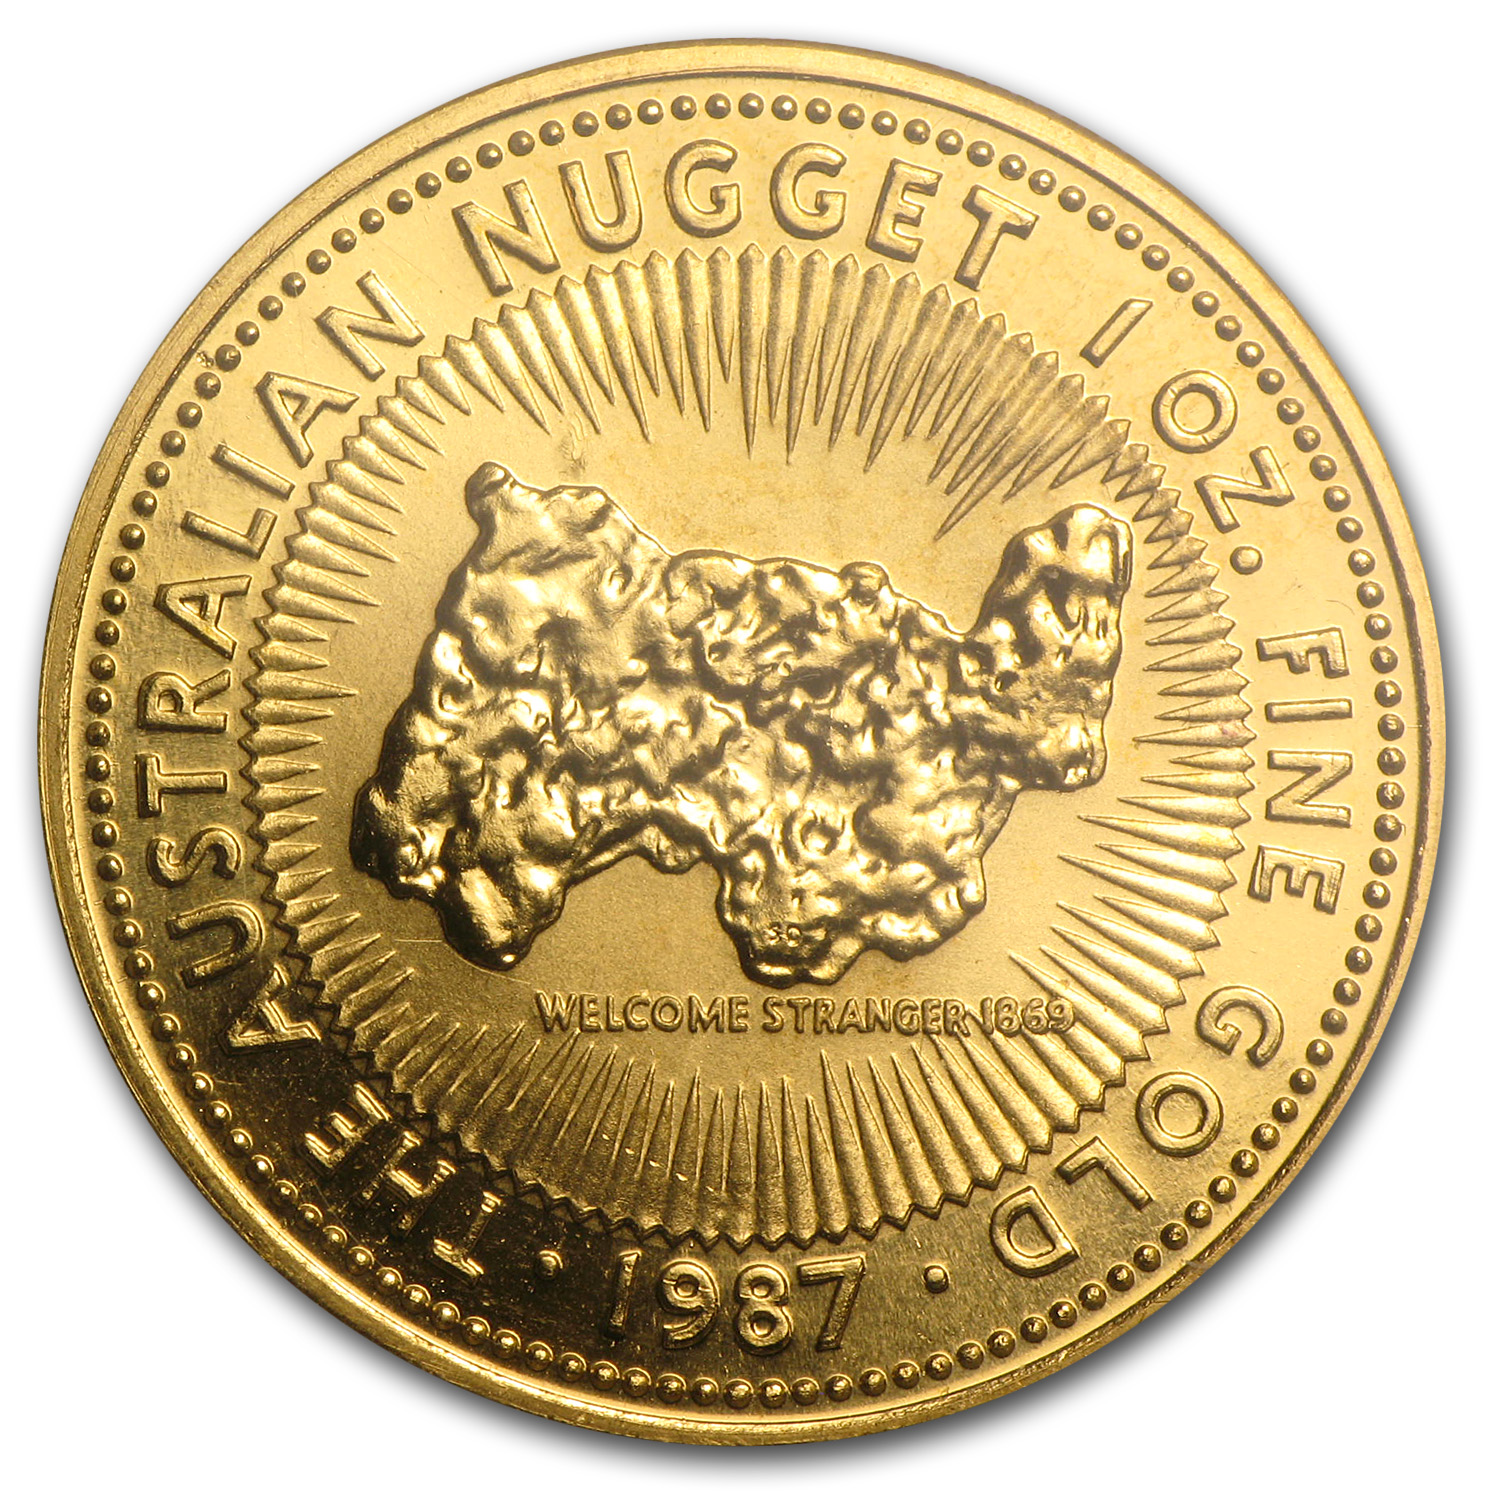 1987 1 oz Australian Gold Nugget